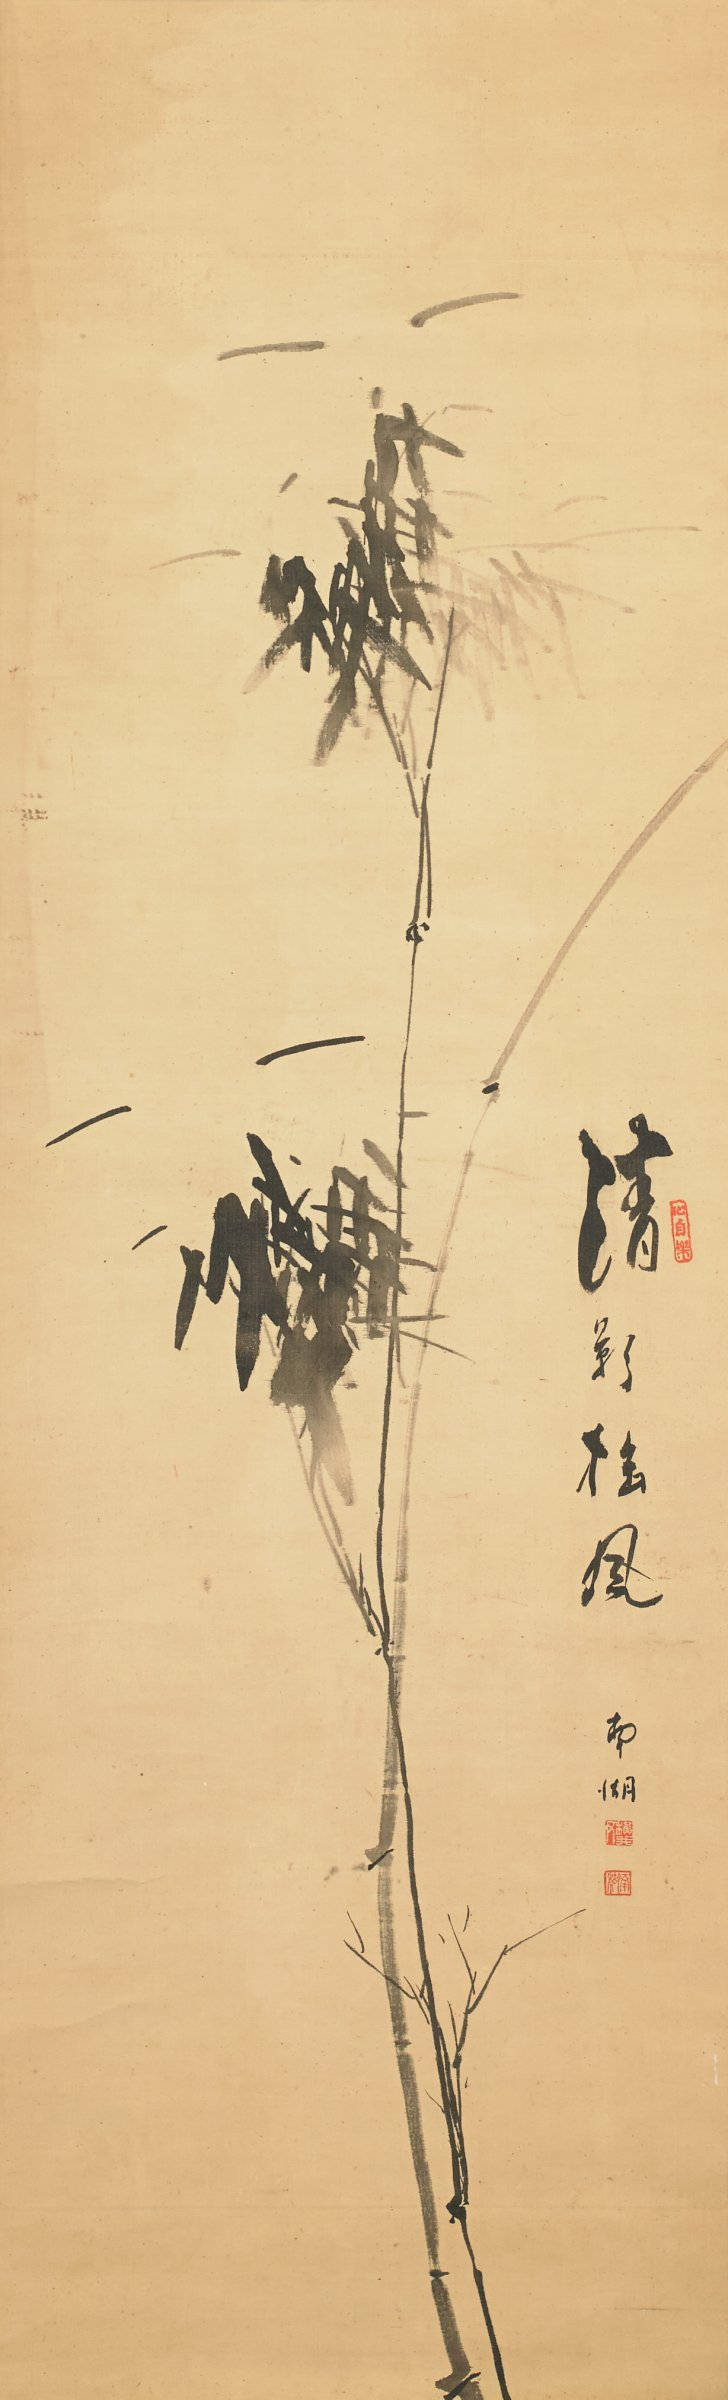 Hanging Scroll of Bamboo and Calligraphy